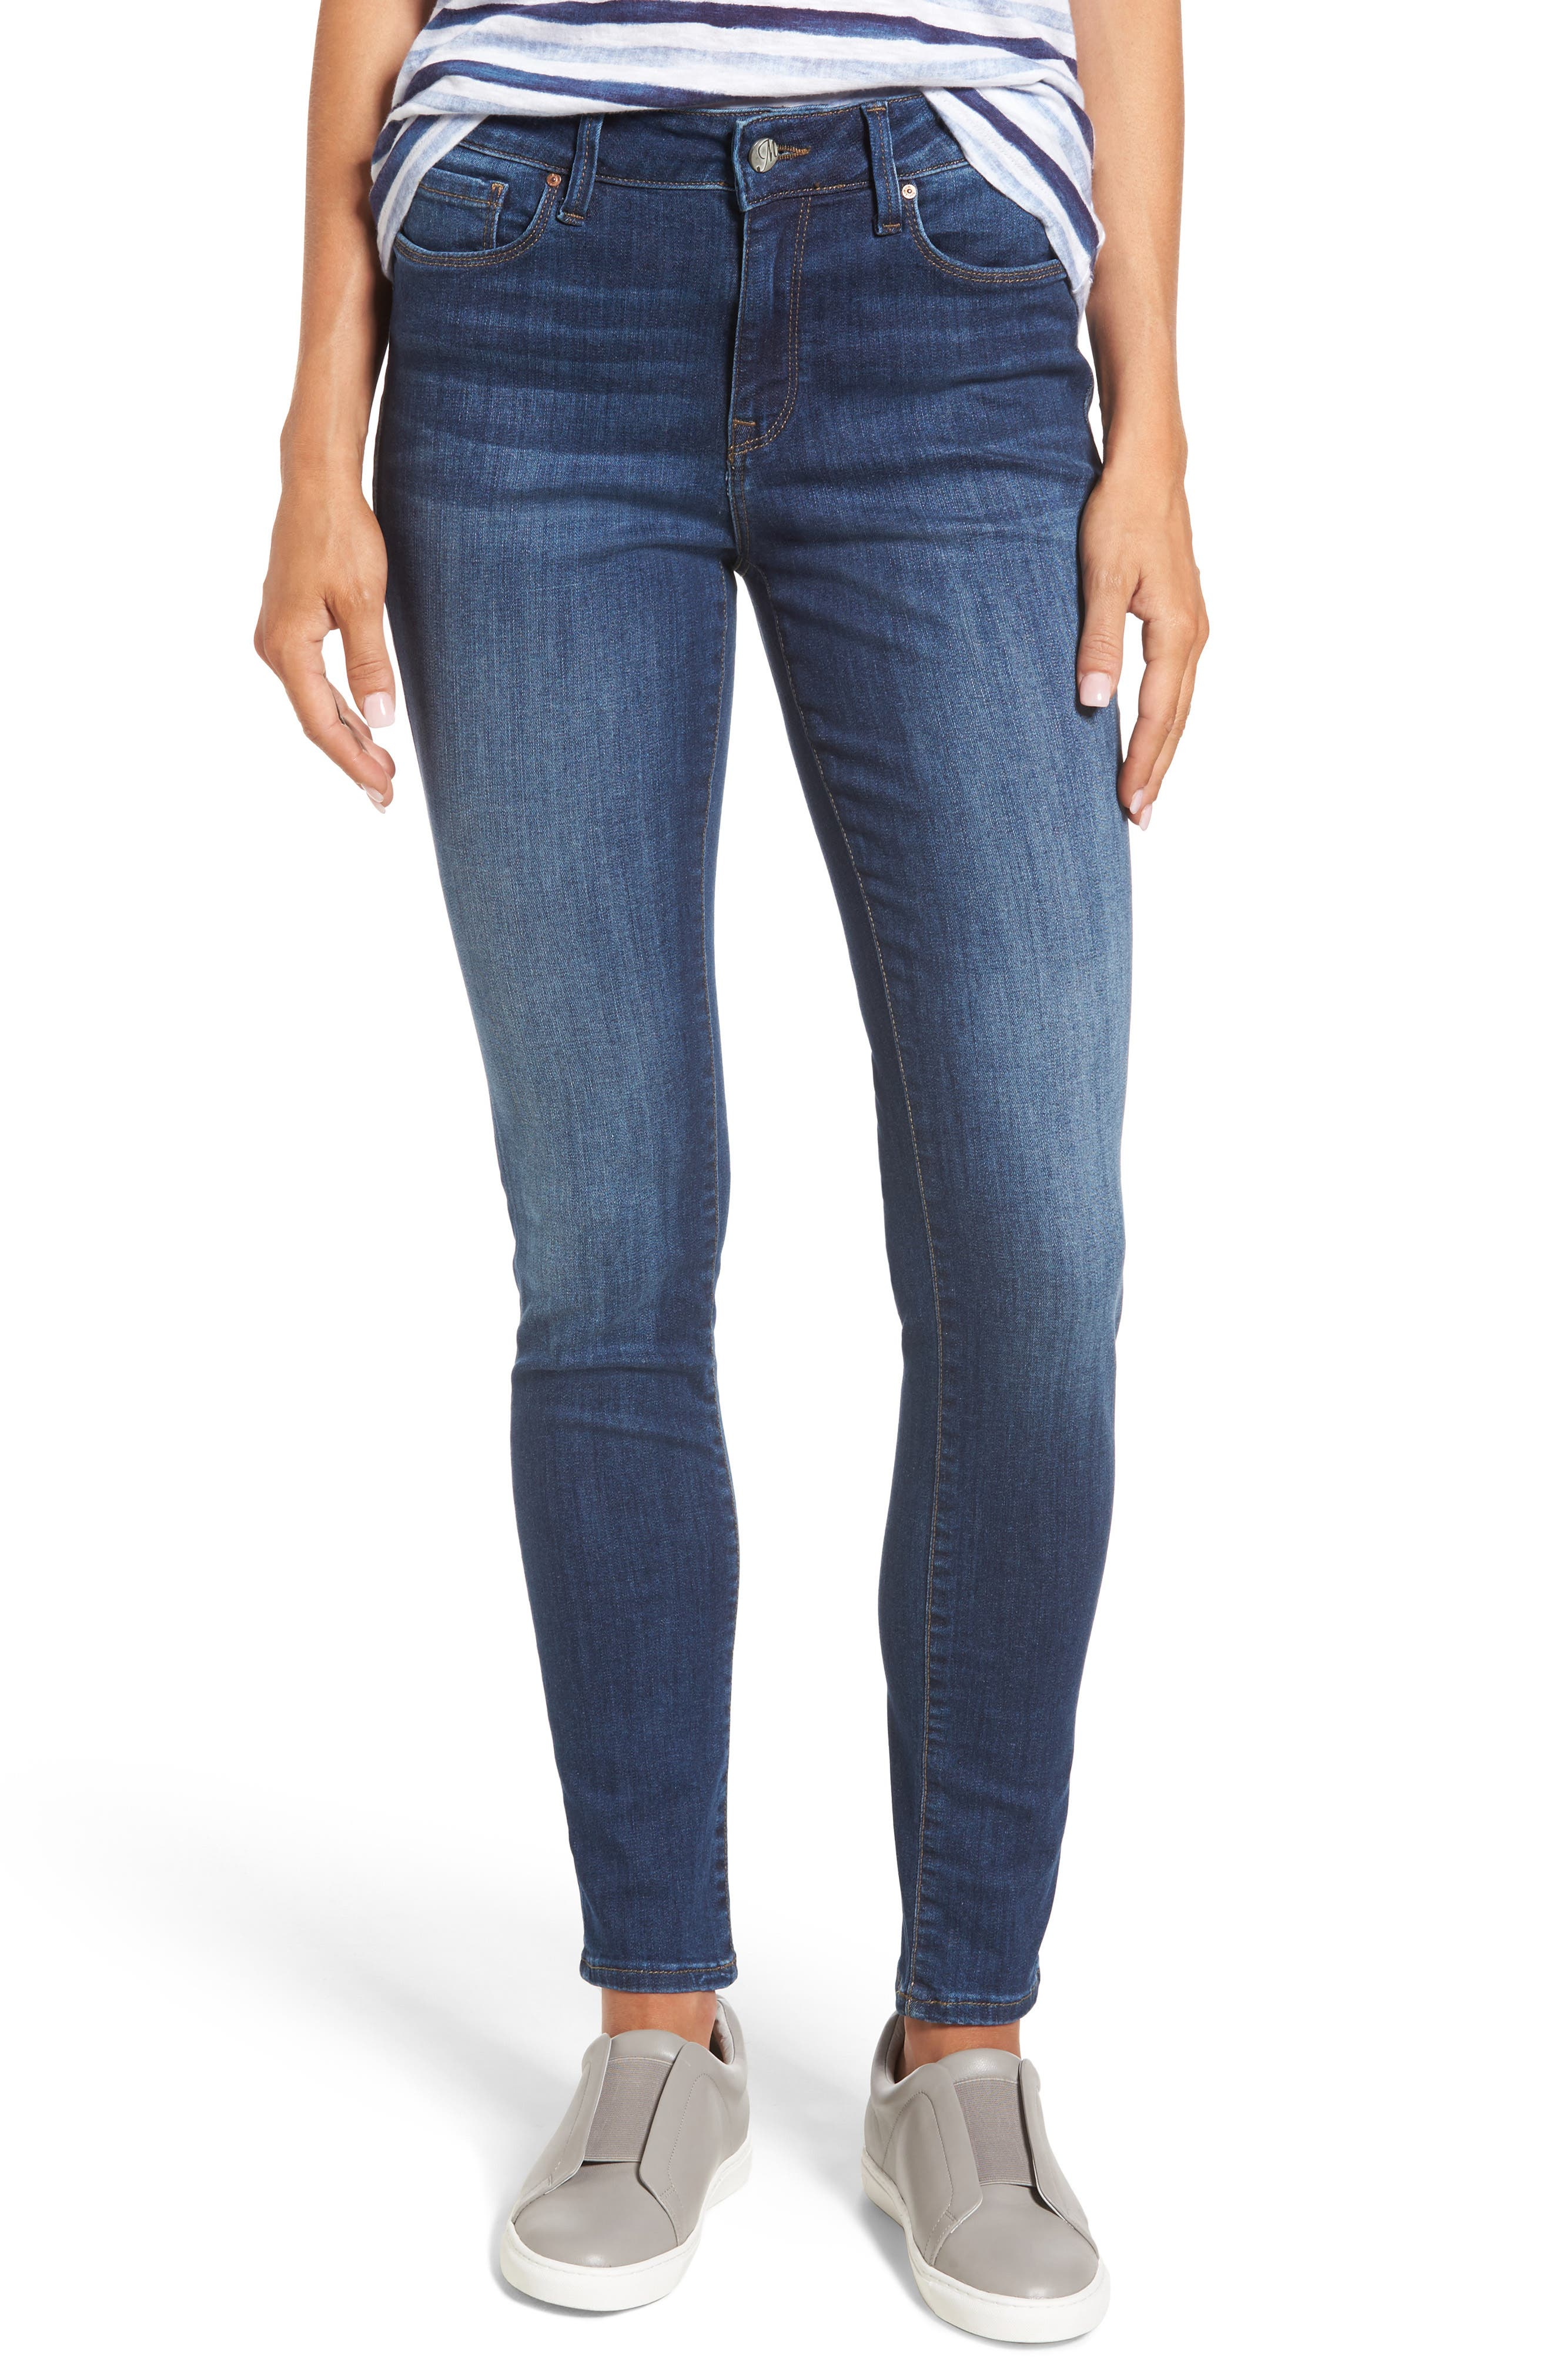 Alissa Super Skinny Jeans,                             Main thumbnail 1, color,